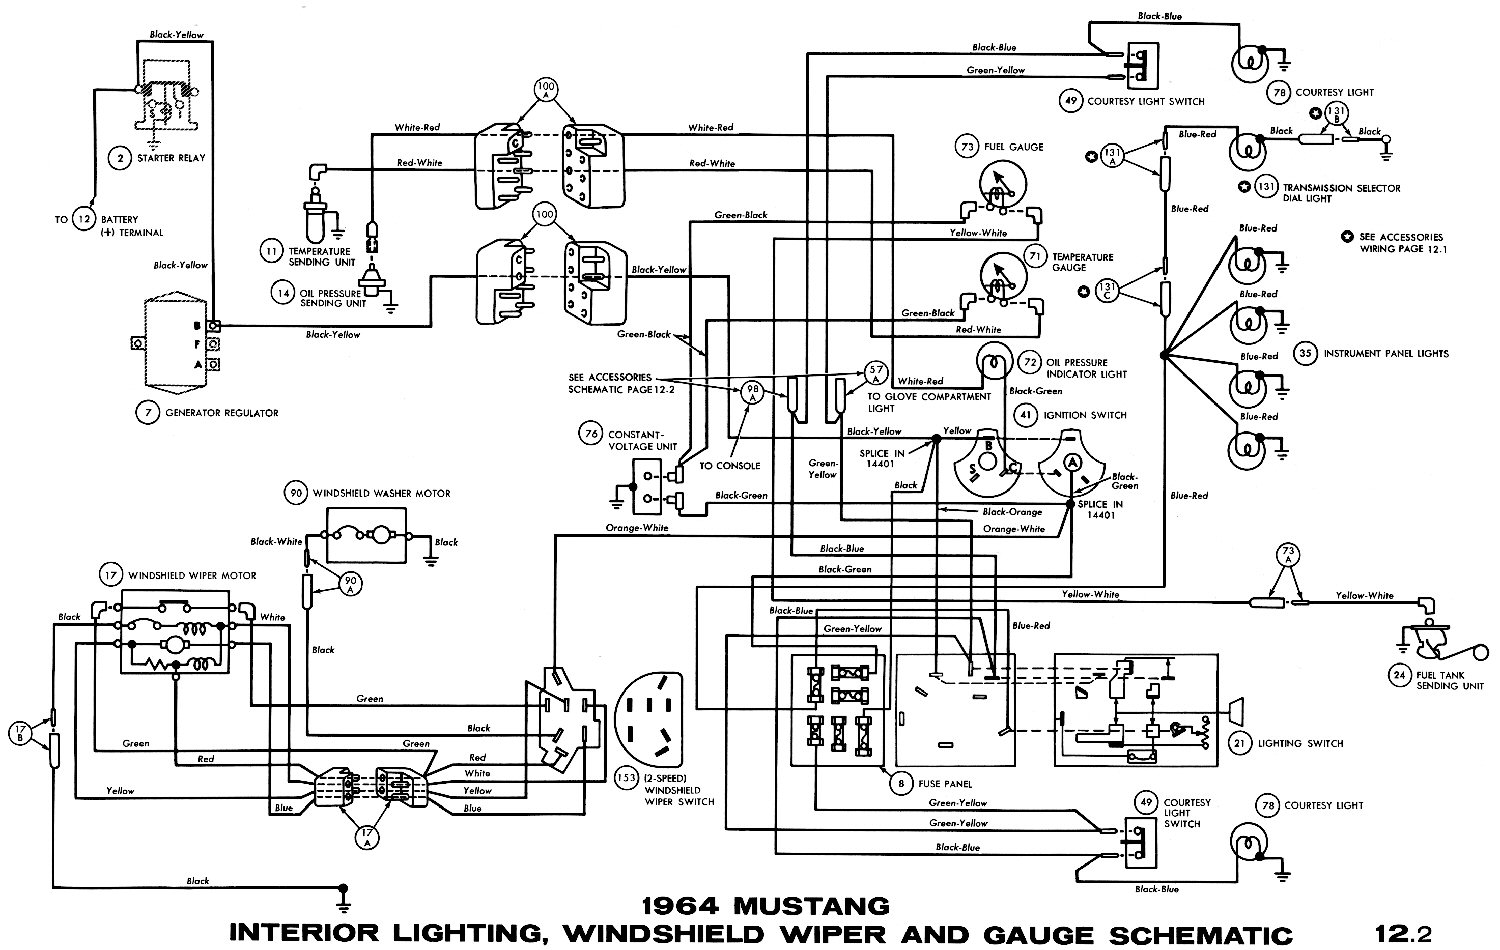 1964k 2014 mustang wiring diagram on 2014 download wirning diagrams  at n-0.co